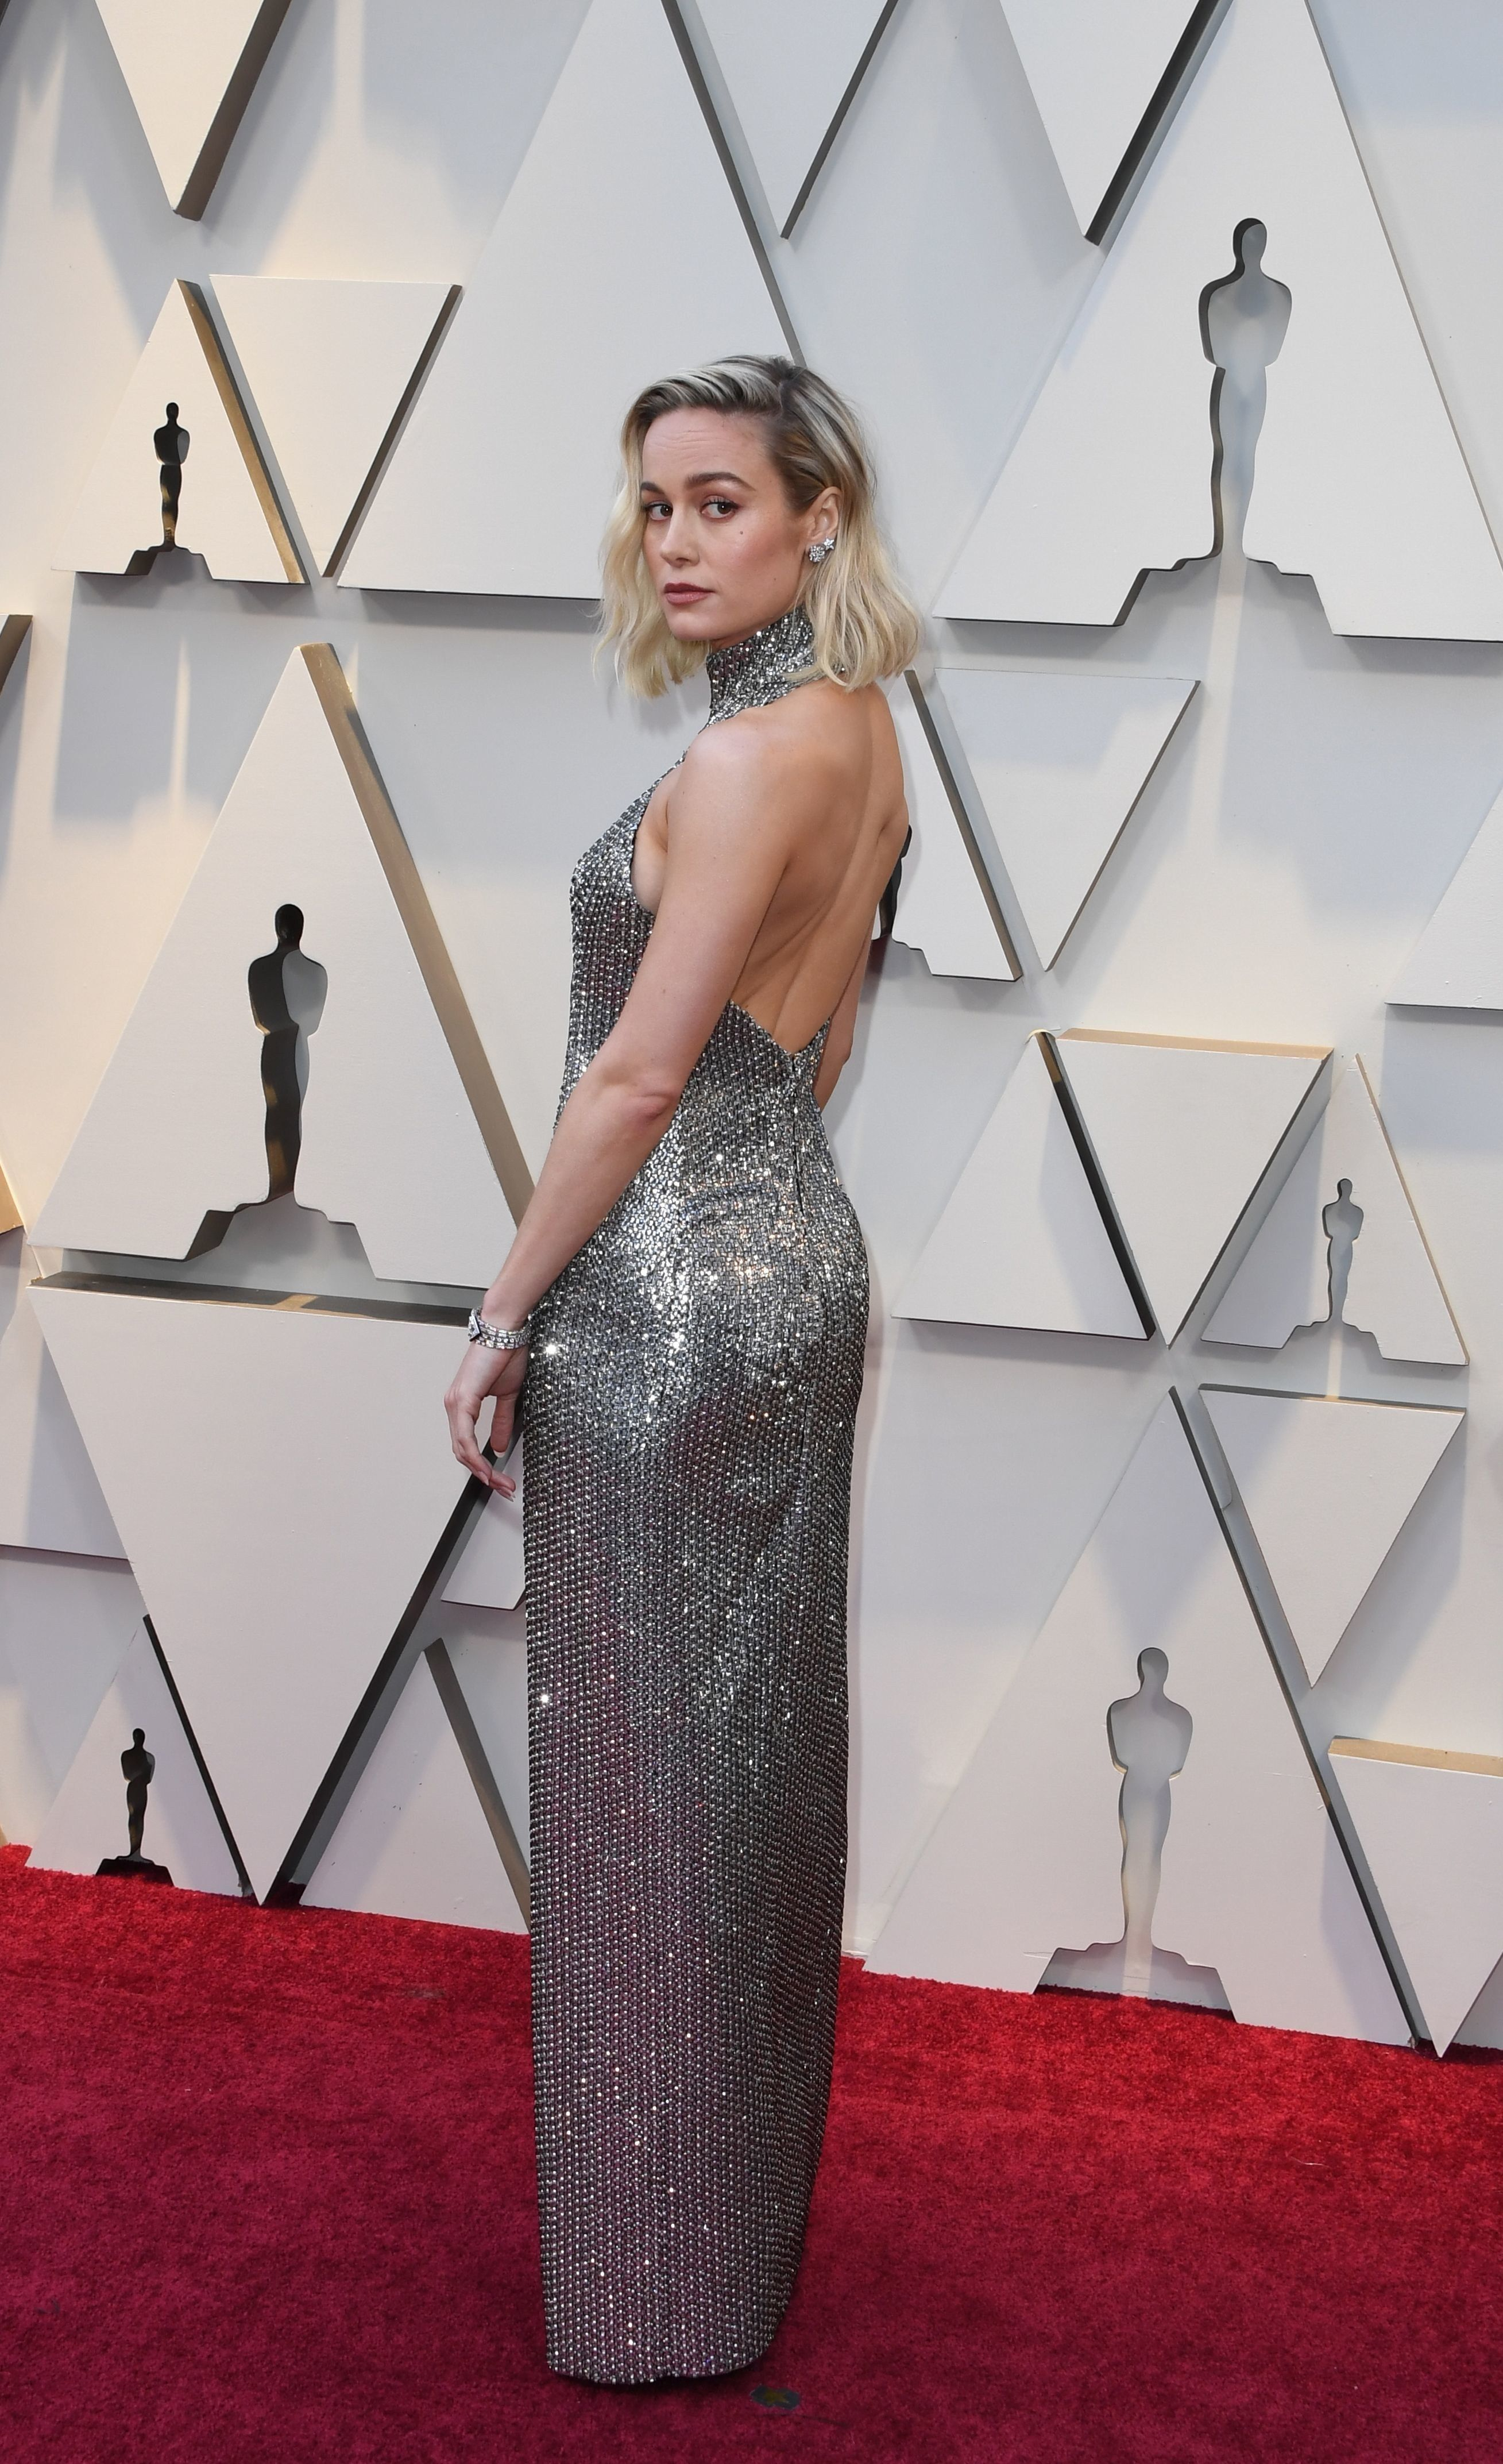 b66af7a774c8 The Best Dressed Celebrities on the Oscars 2019 Red Carpet in 2019 ...